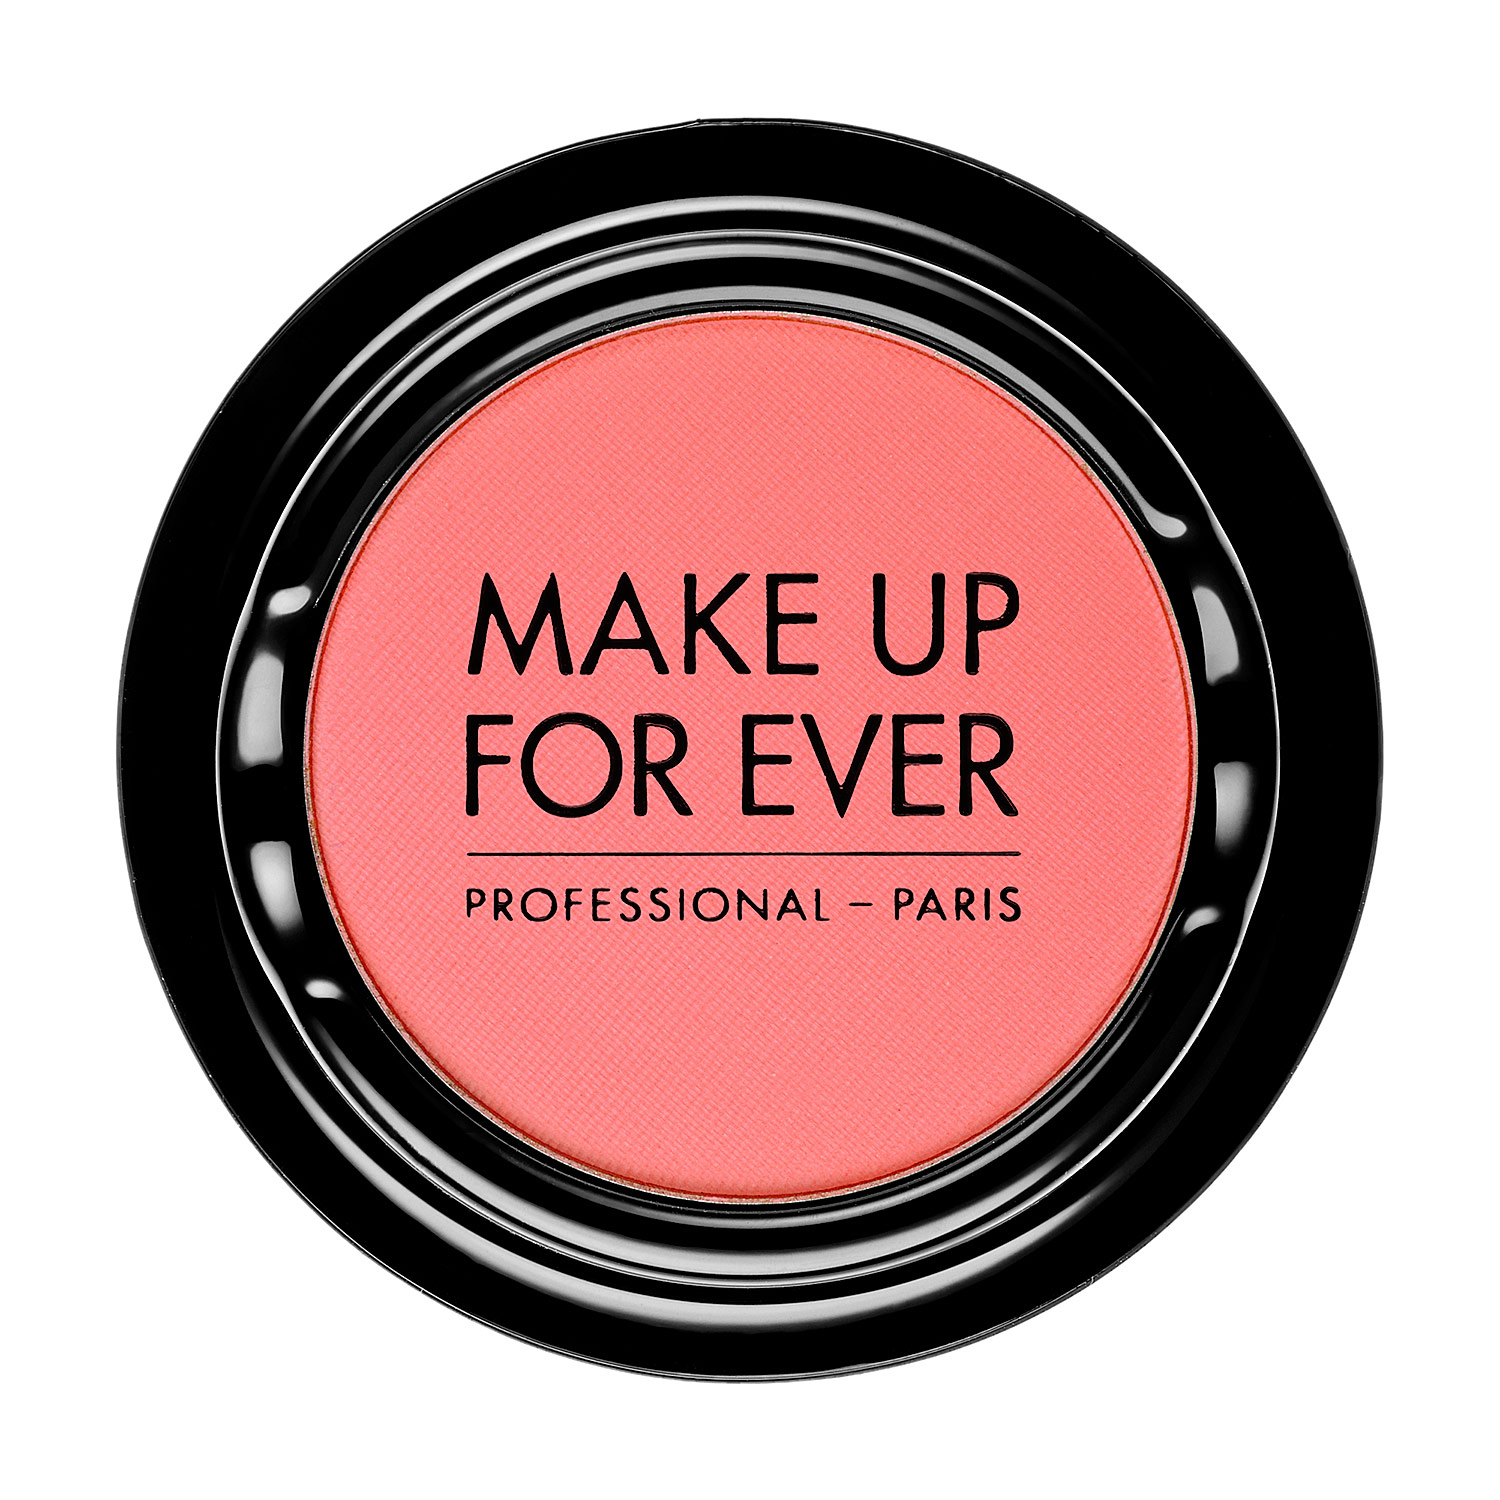 Deep Complexions: Make Up For Ever Artist Shadow Eyeshadow and Blush in M856